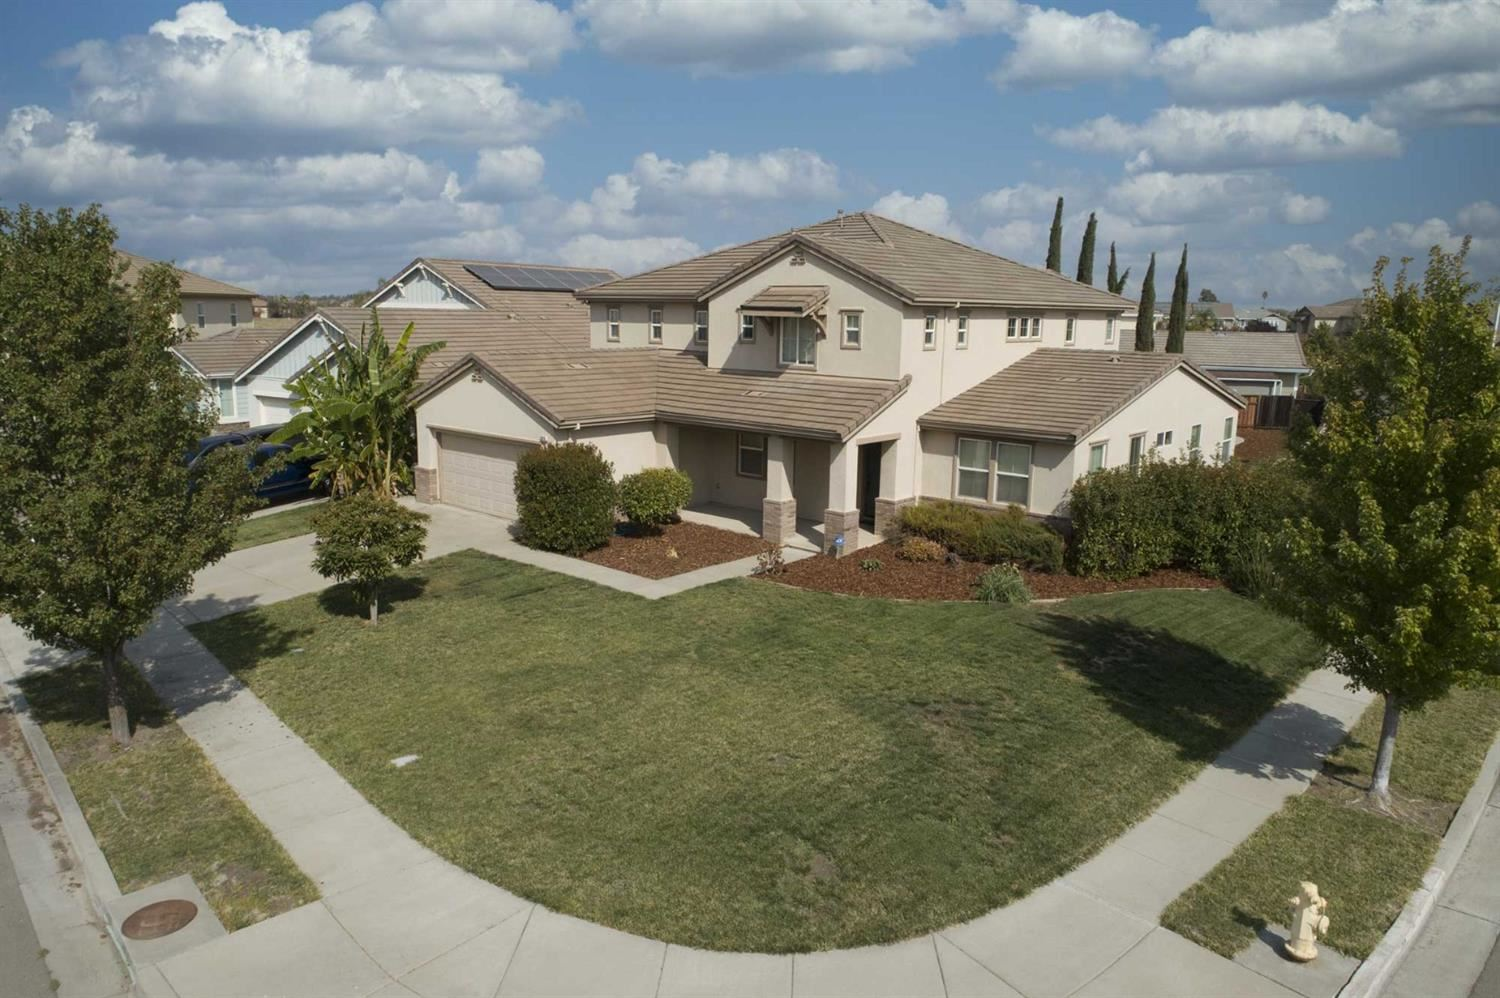 Photo of 3711 Folsom Court, West Sacramento, CA 95691 (MLS # 20058059)